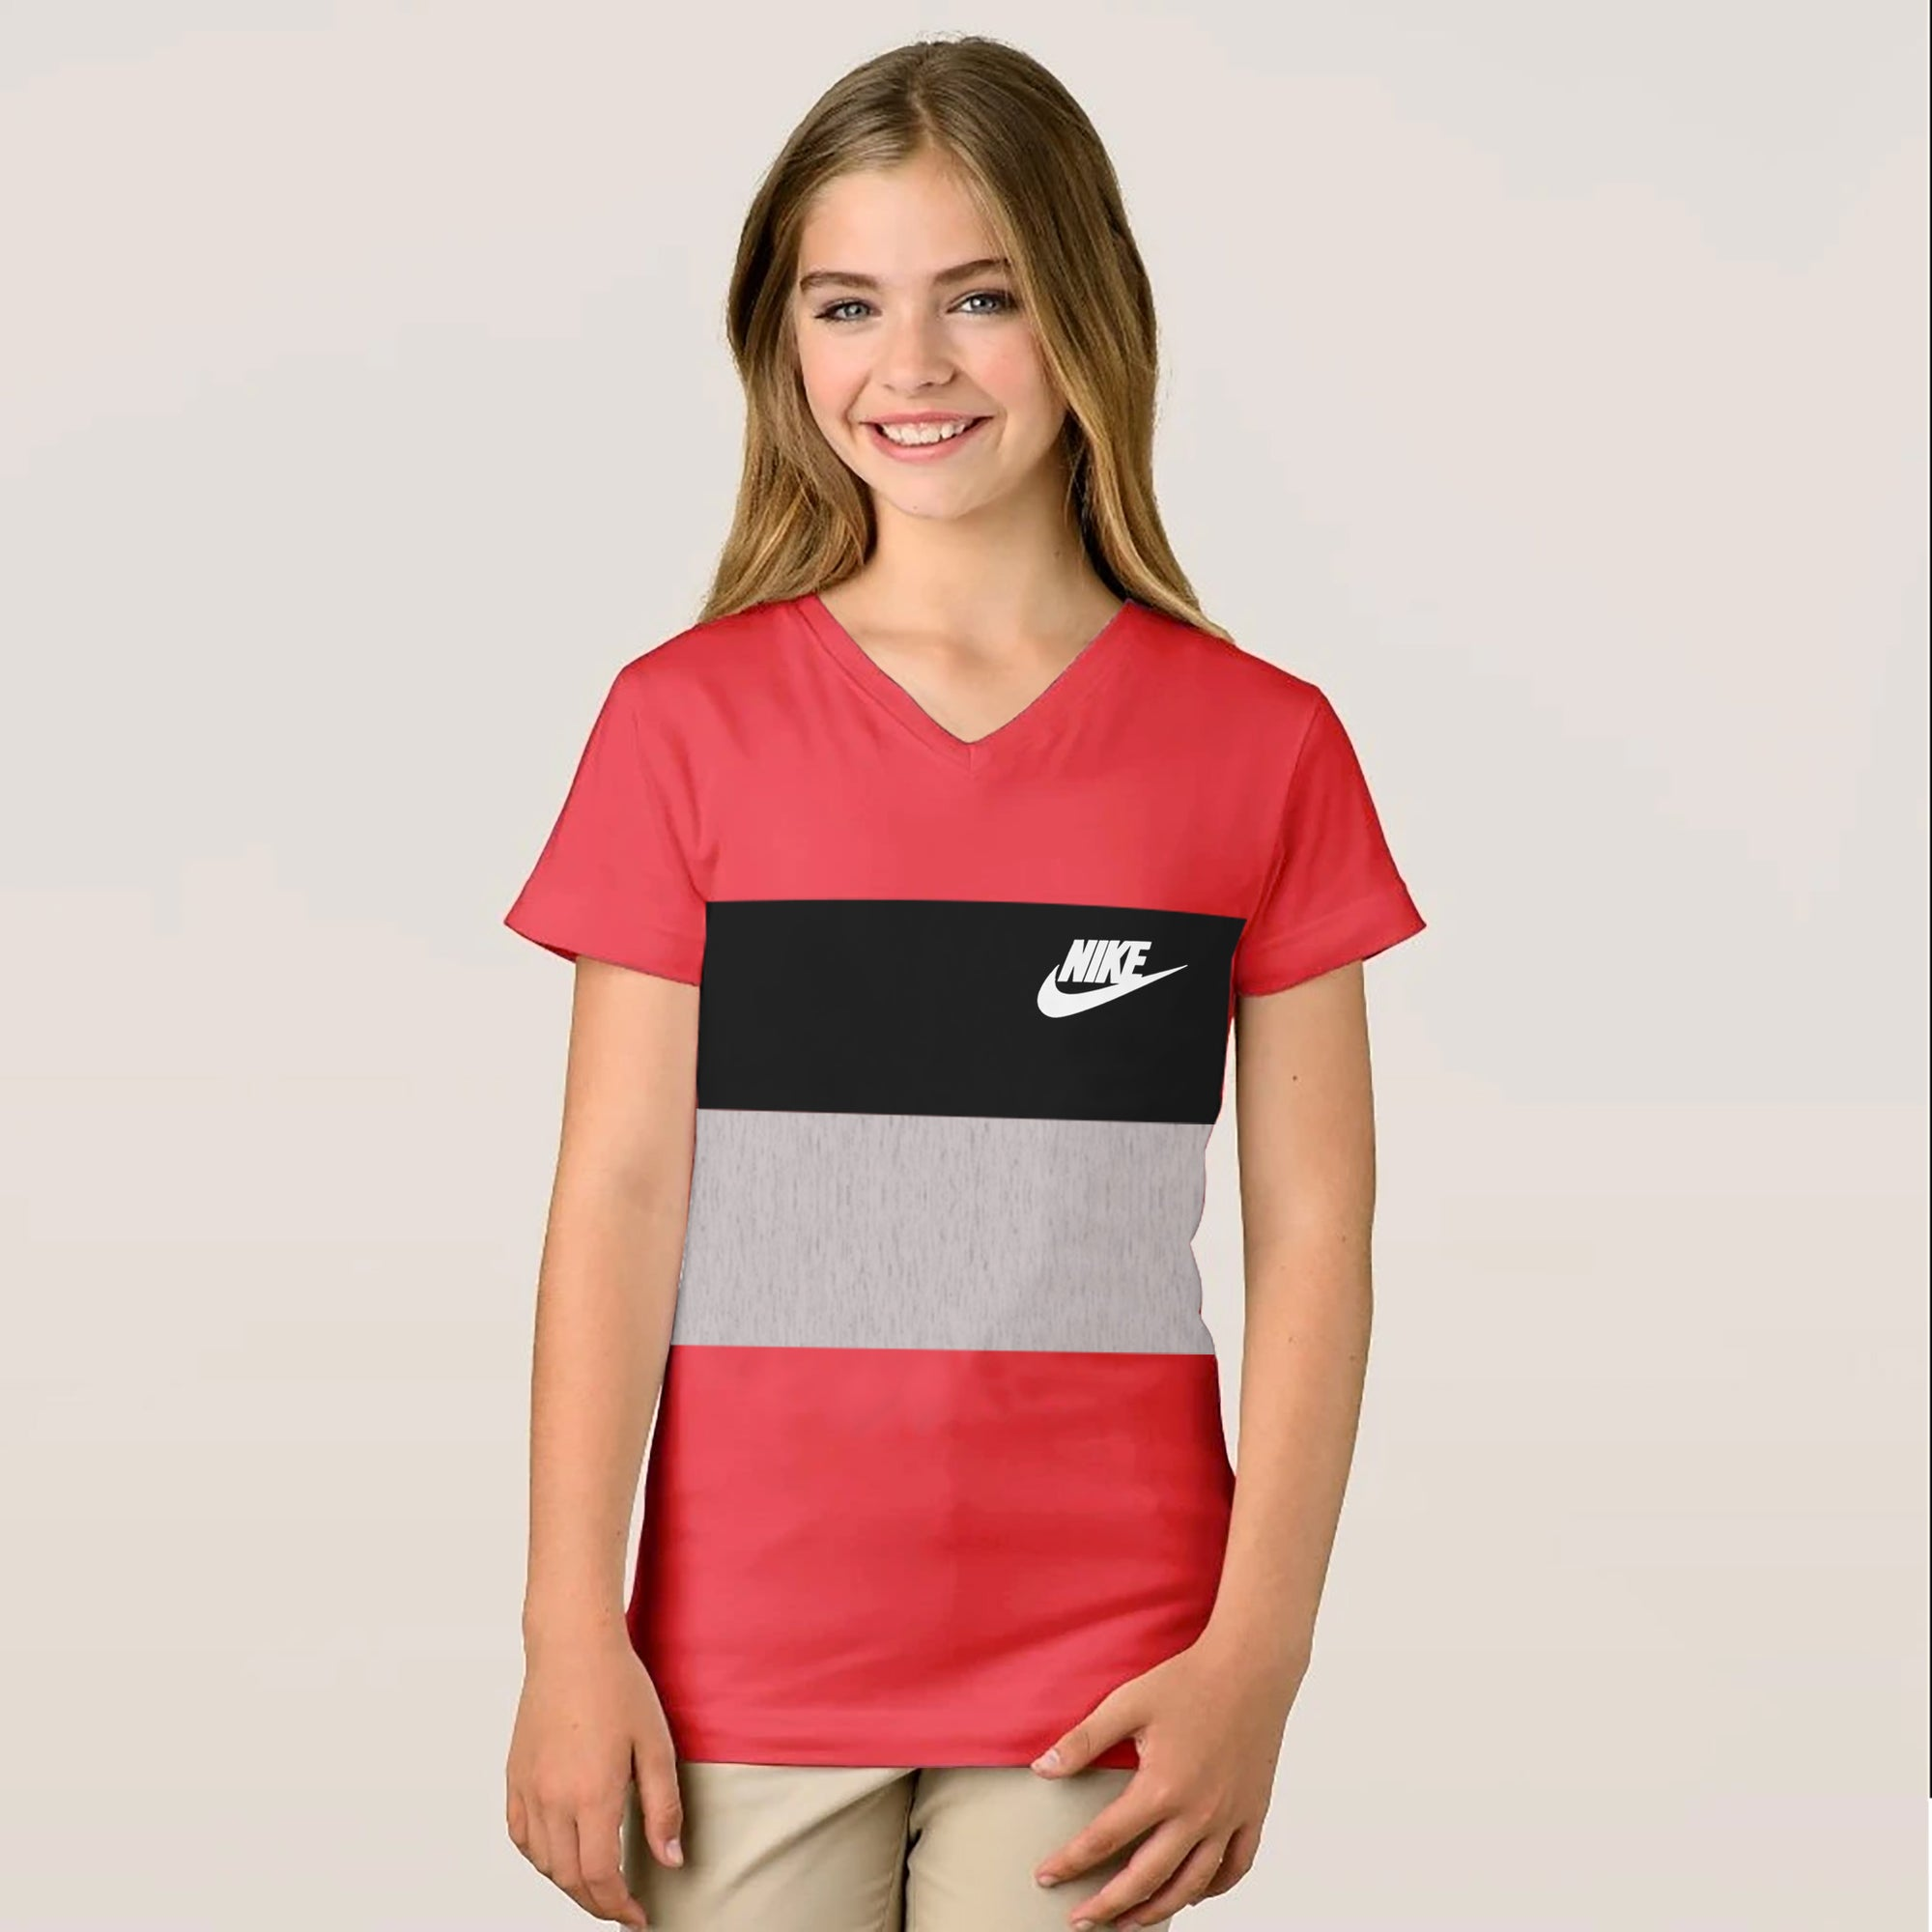 NK V Neck Single Jersey Short Sleeve Long Tee Shirt For Girls-Pink With Panels-SP1893